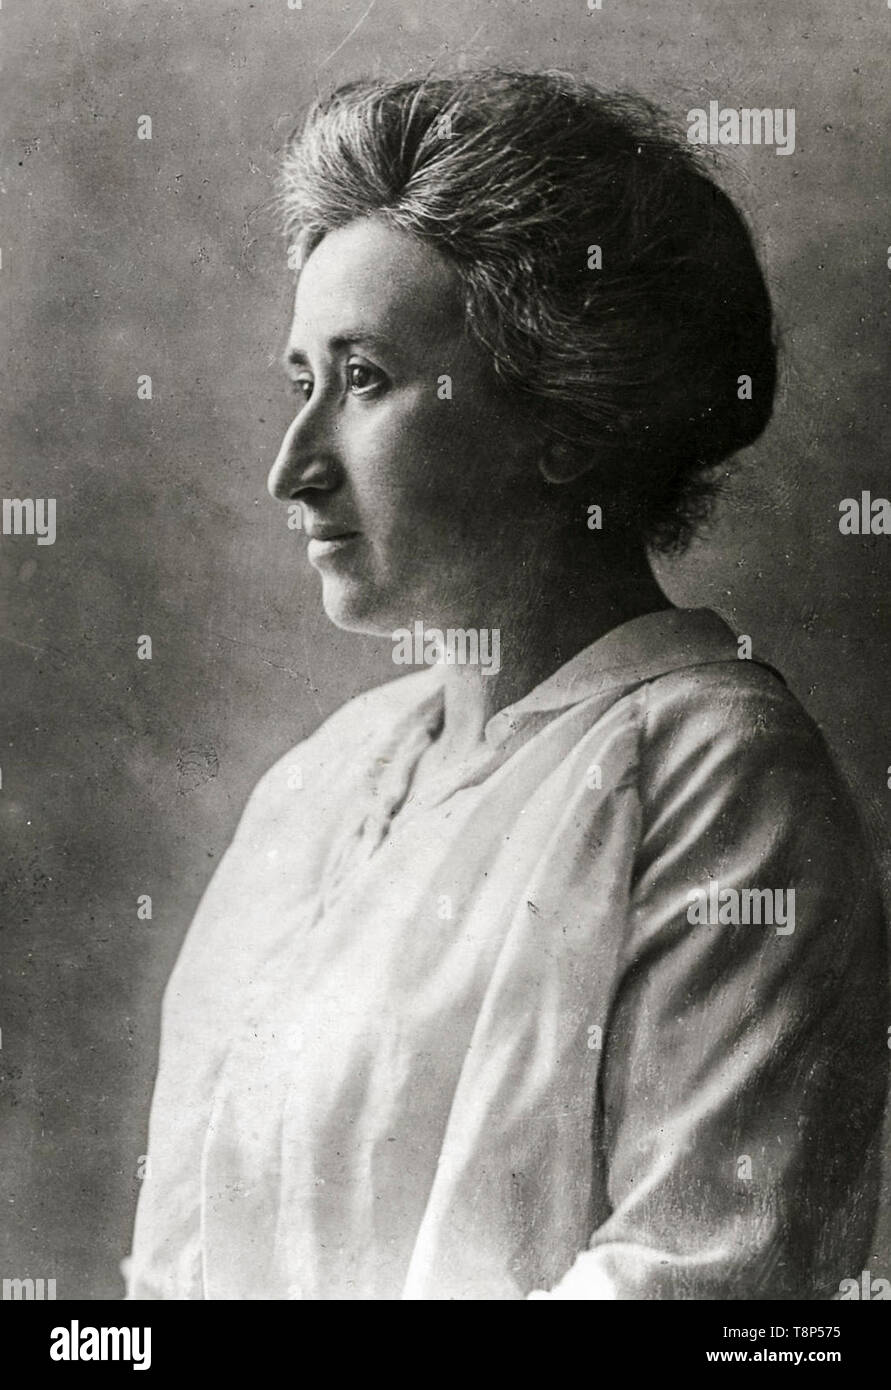 Rosa Luxemburg, profile, portrait photograph, c. 1910 Stock Photo